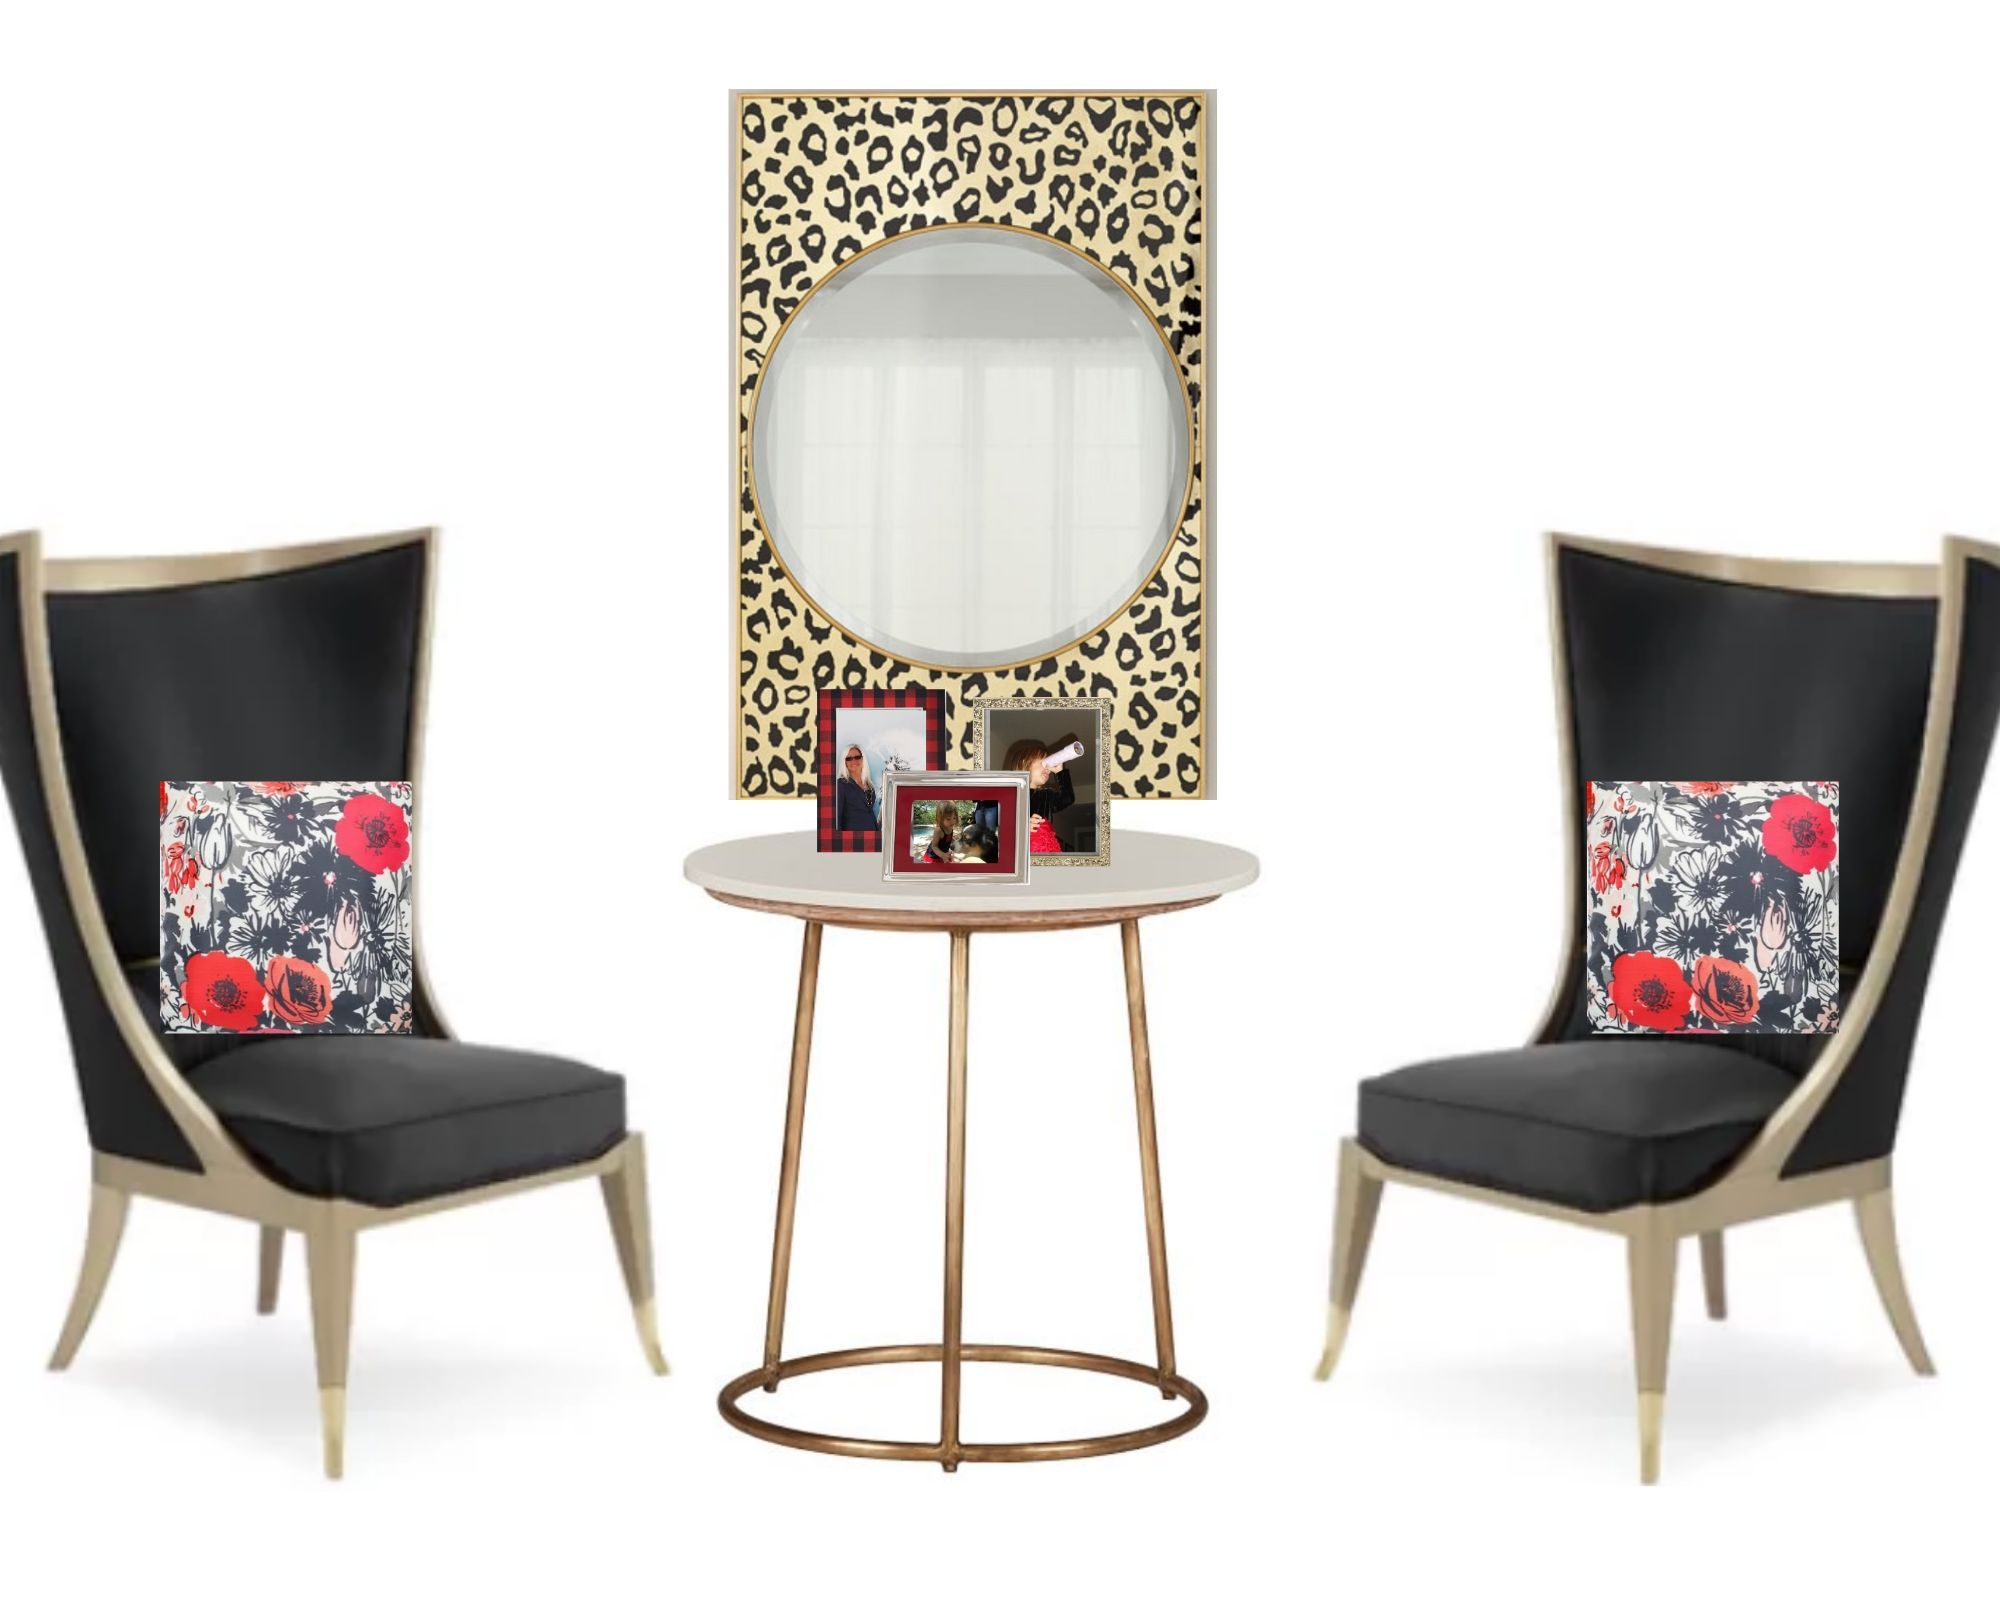 This inspirational mood board features a modern sitting area design with pops of red, floral and leopard print  #homedecor #interiordesign #interiordecorating #sittingroom #interiordecorideas